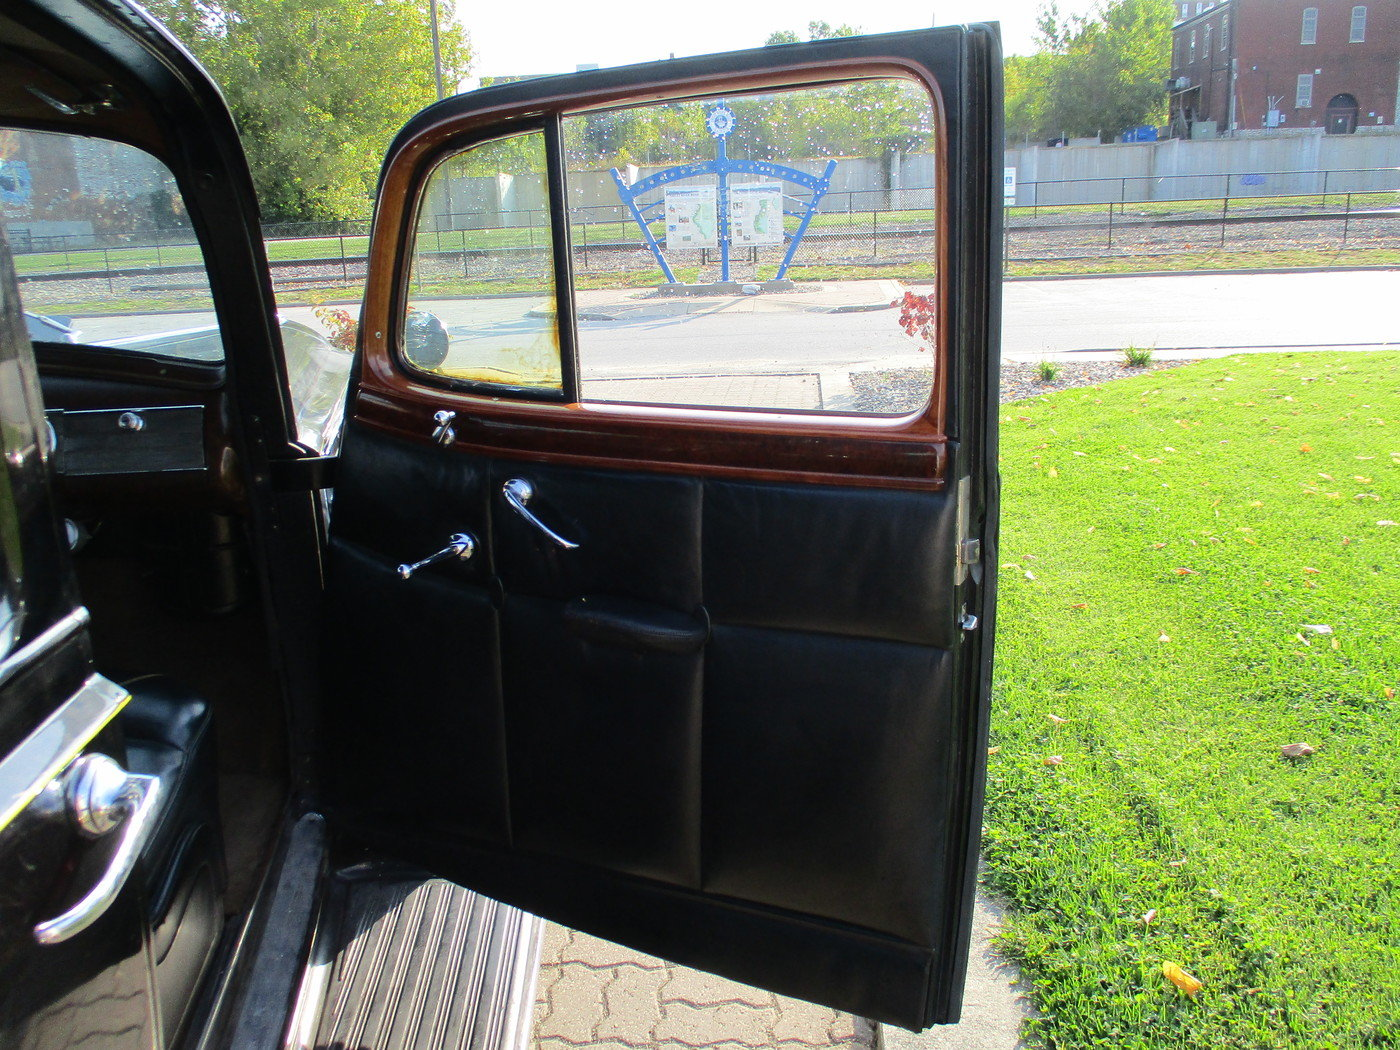 1939 Packard Model 1708 12 Cylinder Limousine For Sale (picture 3 of 12)